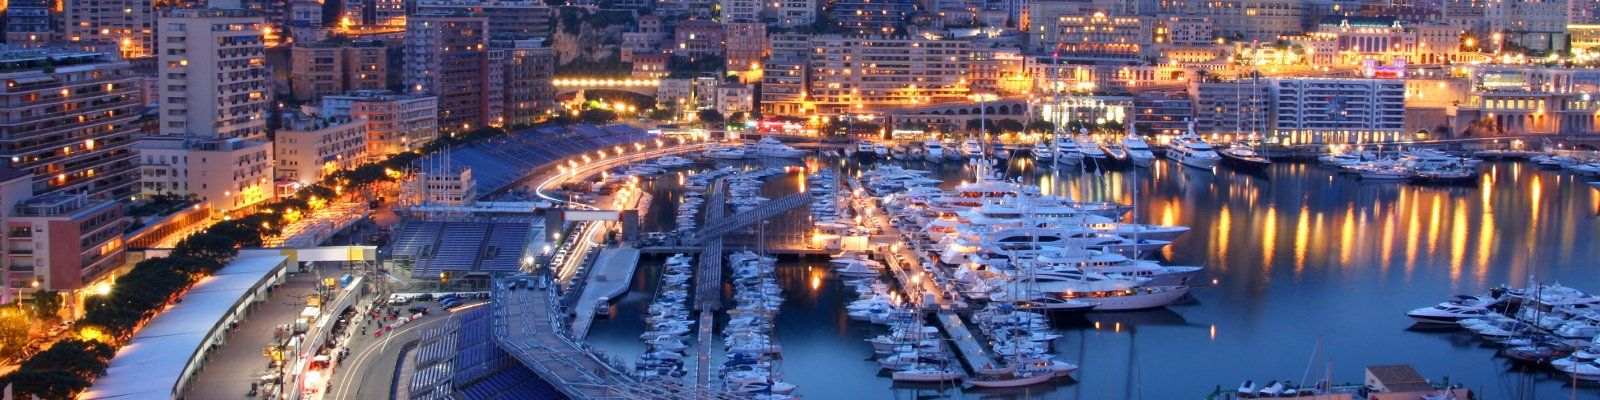 monaco grand prix 2015 us tv